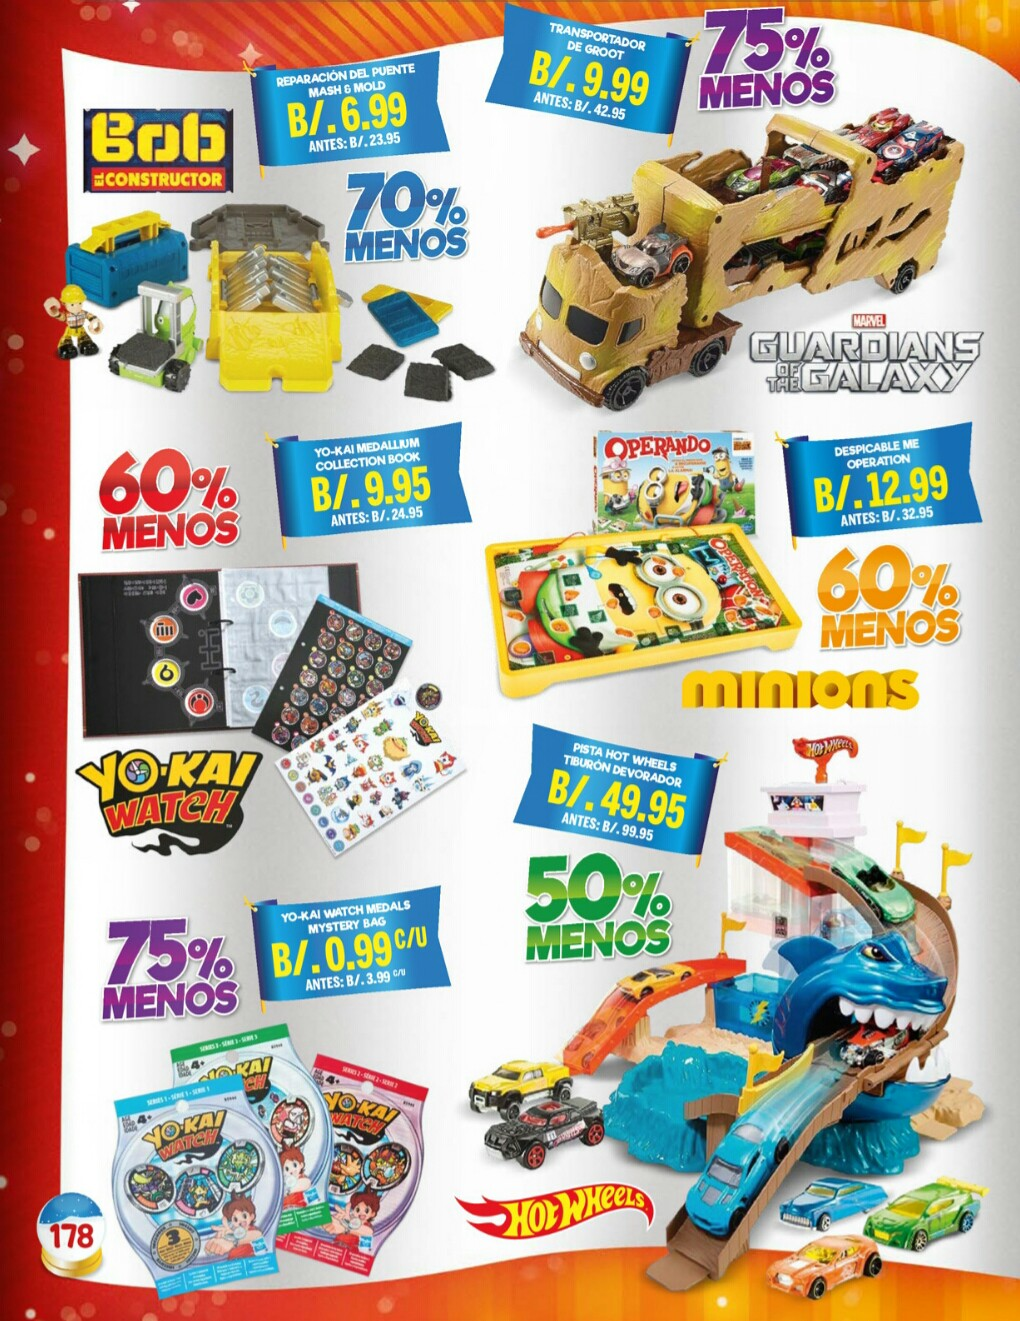 Catalogo juguetes Stivie toys 2018 p178